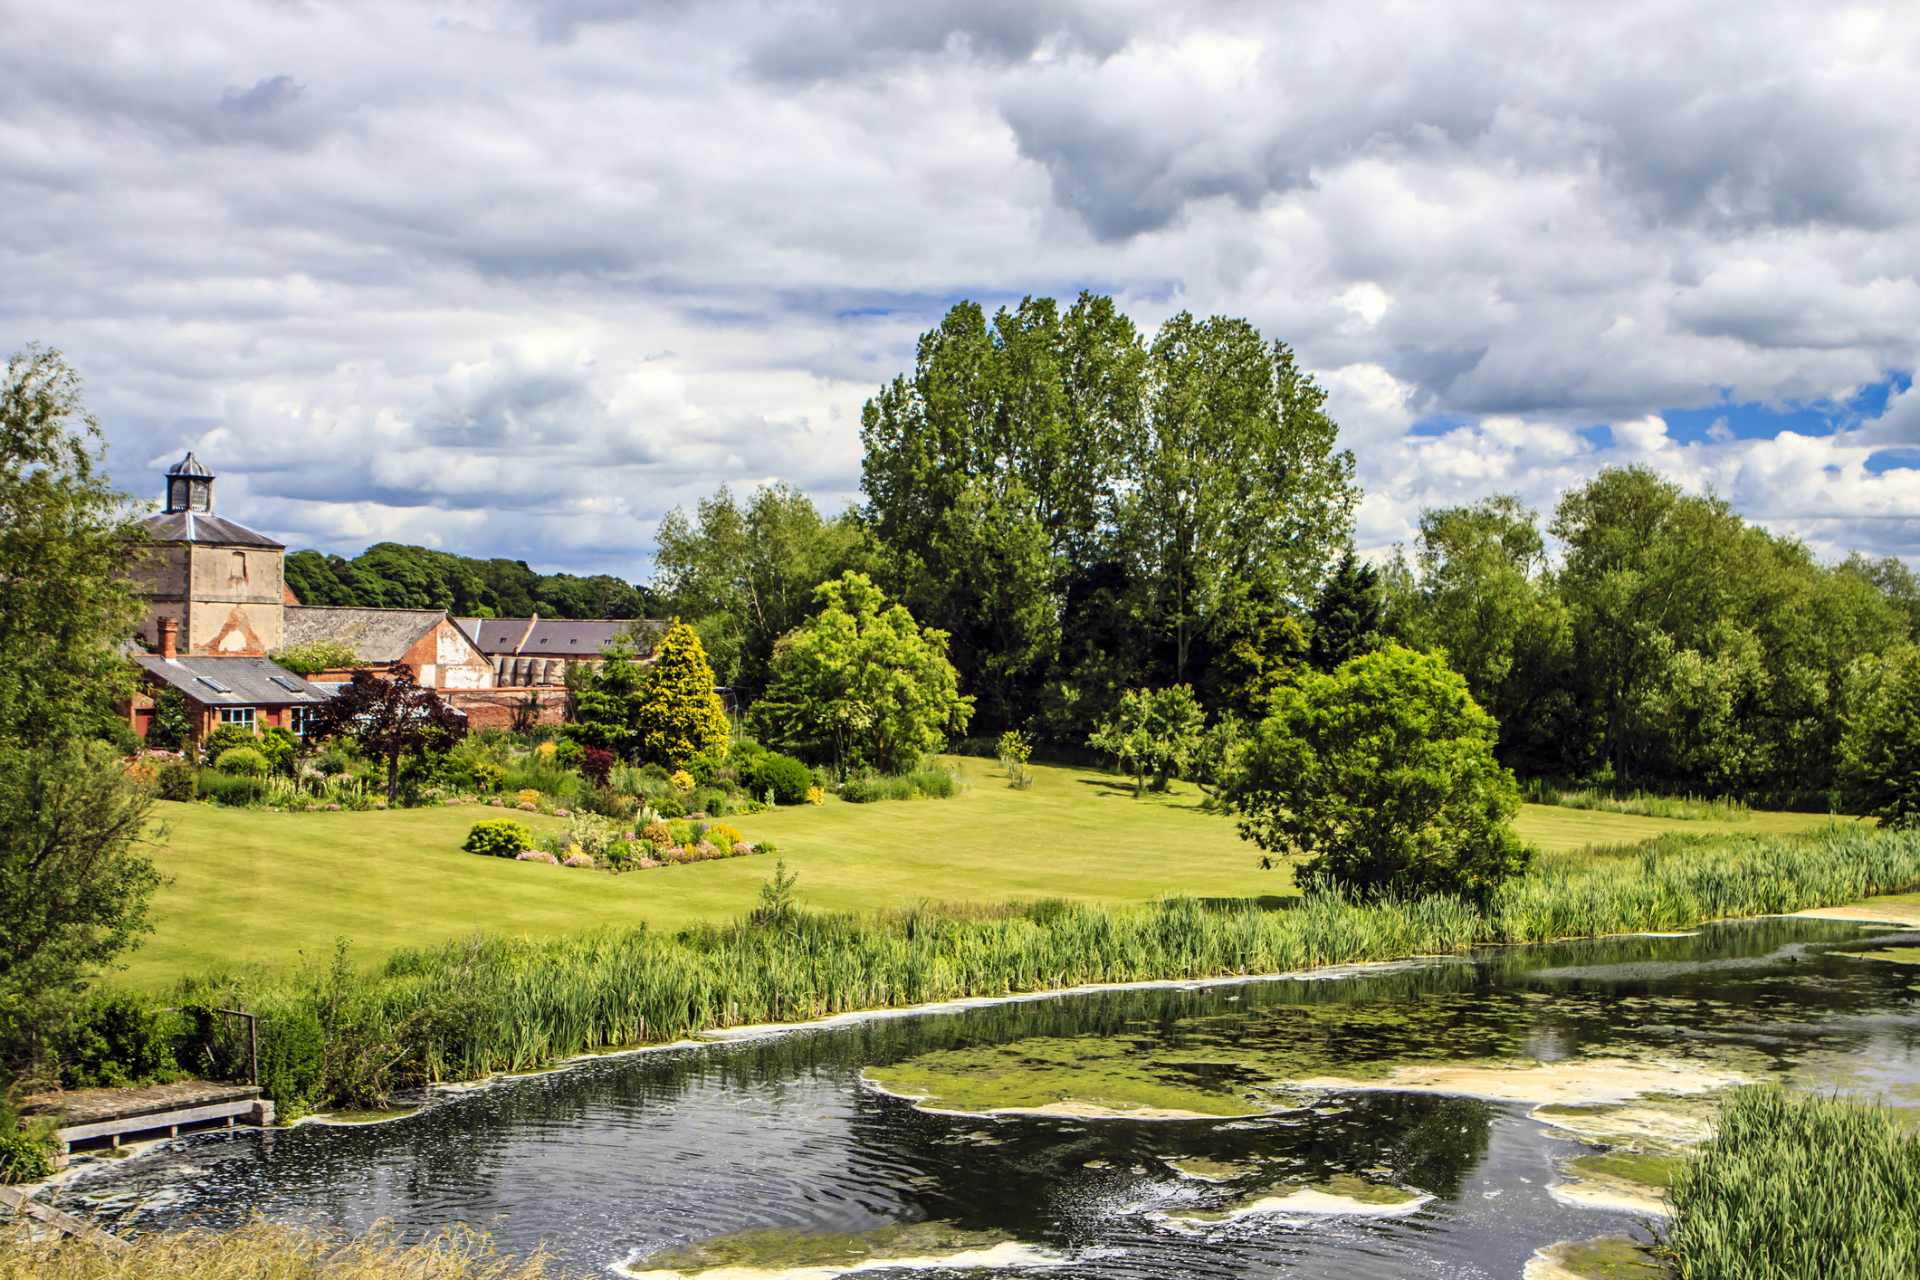 historic-house-with-green-lawn-and-pond-in-clumber park-places-to-visit-in-nottingham